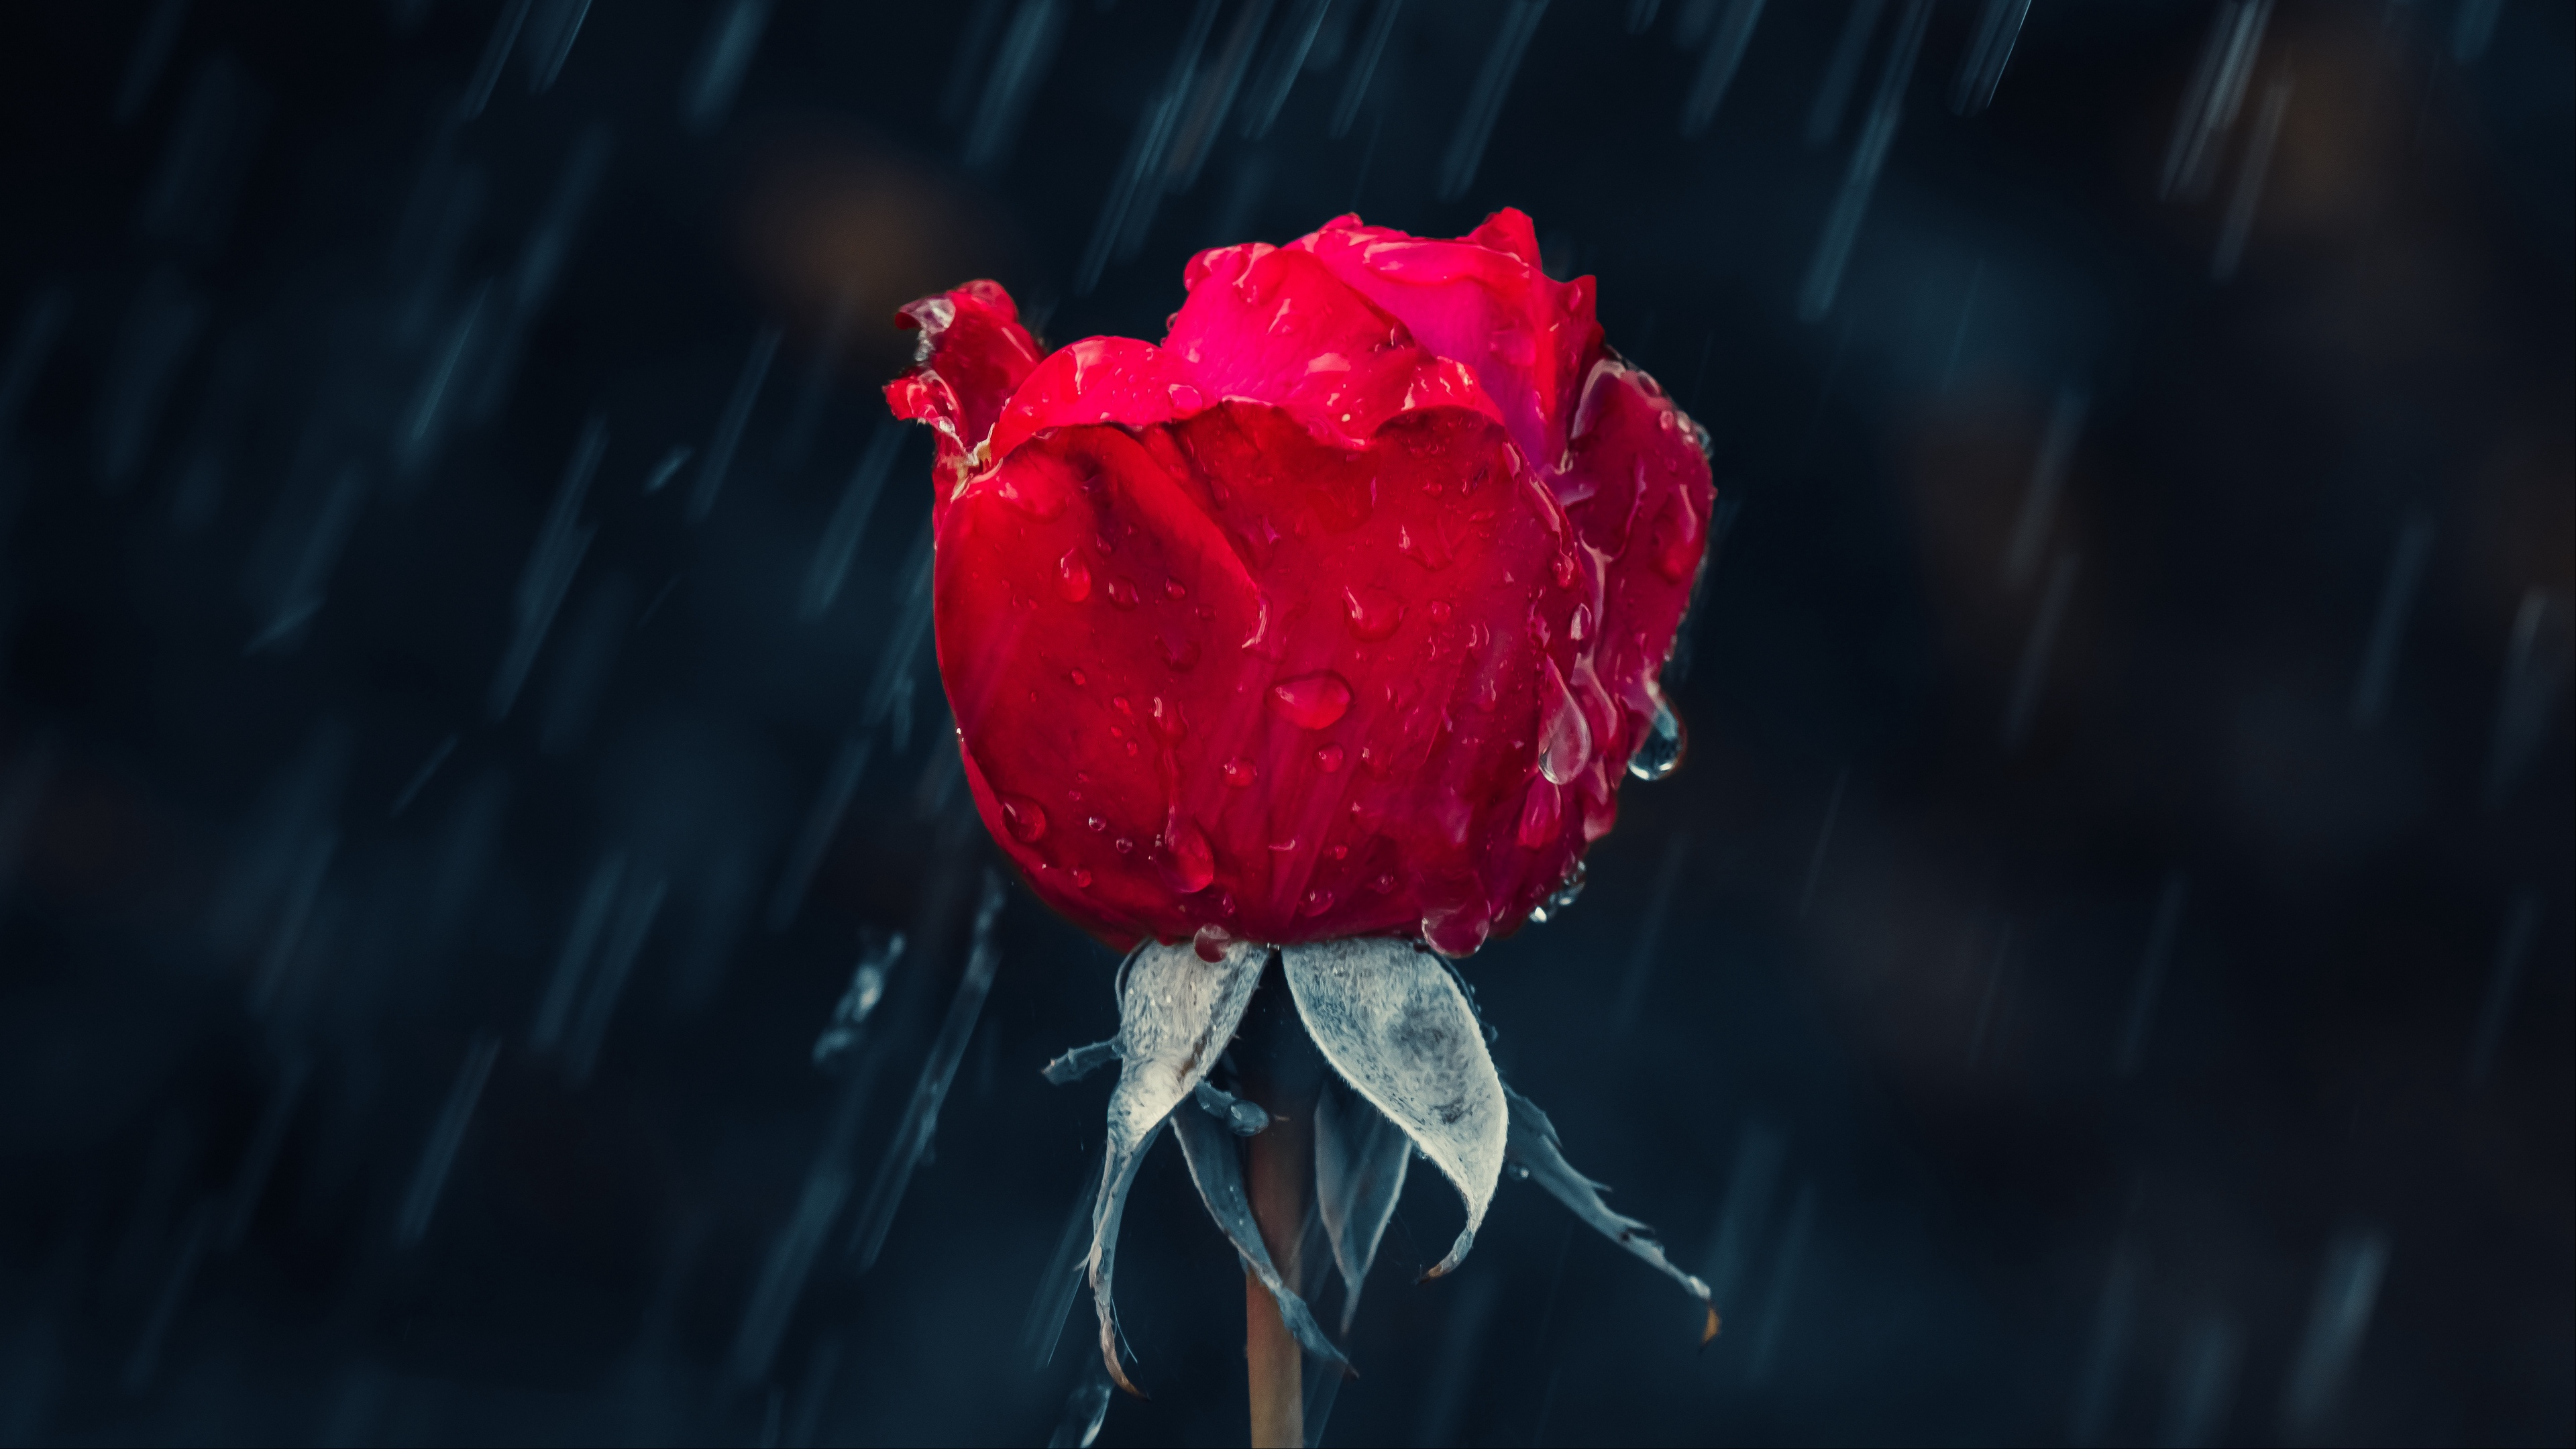 Rain 4k Wallpapers For Your Desktop Or Mobile Screen Free And Easy To Download